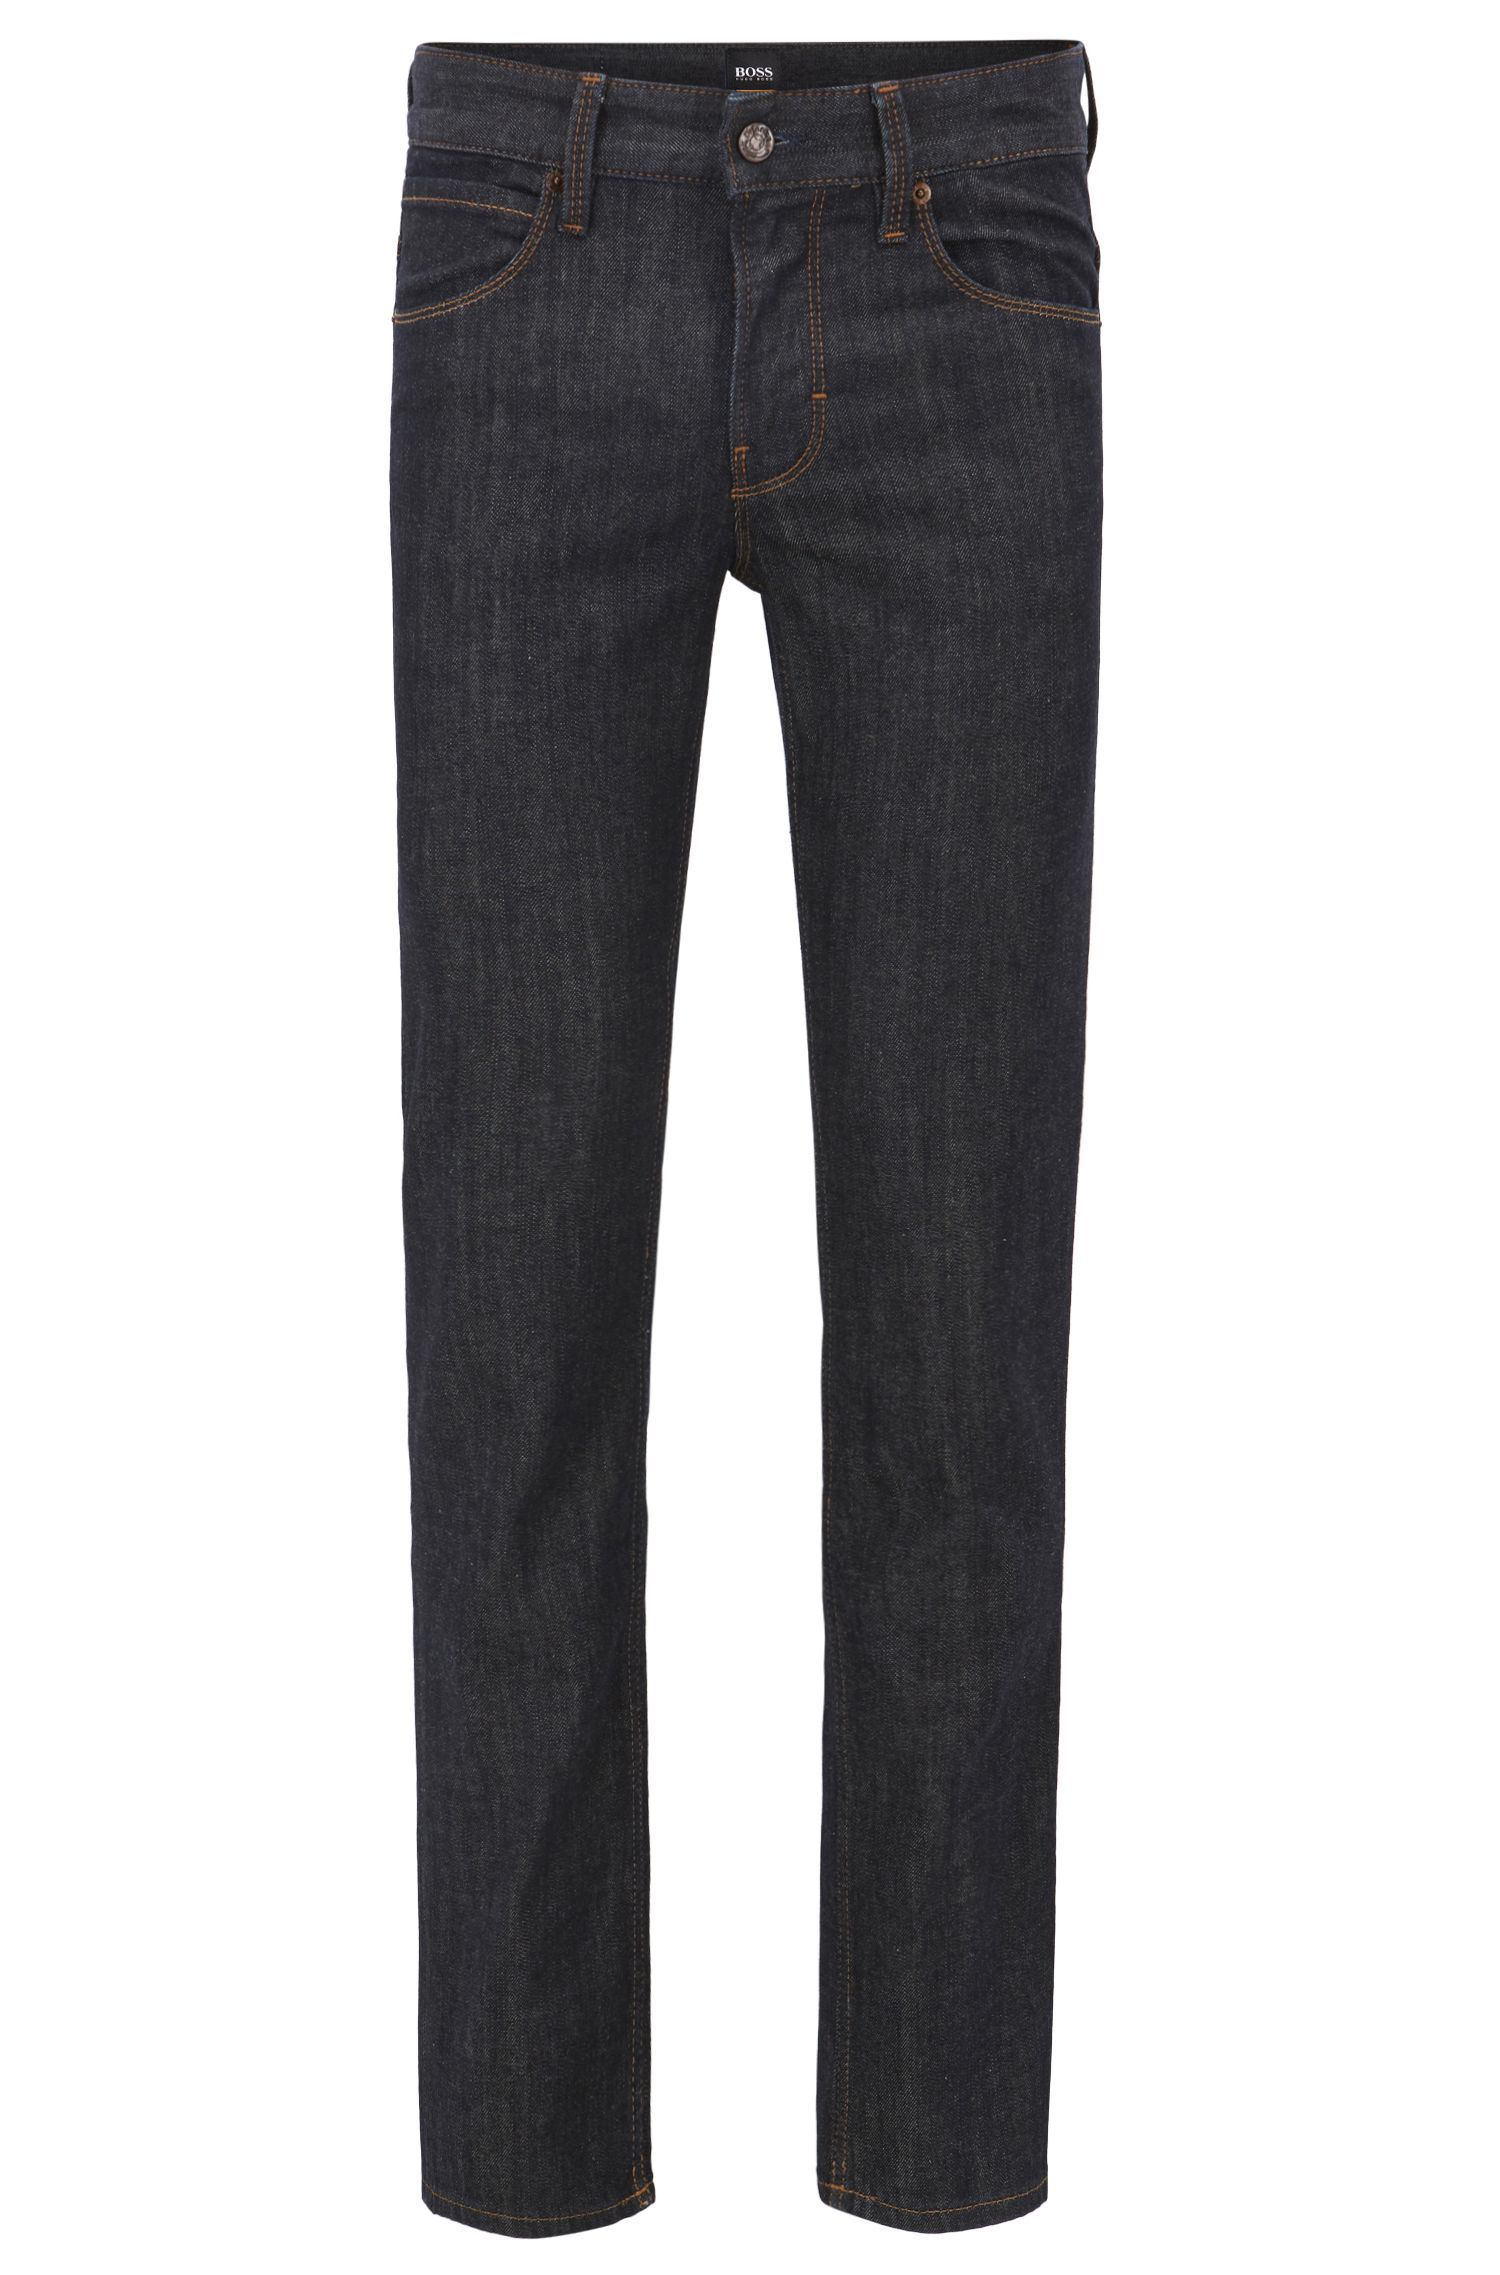 Slim-Fit Jeans aus weichem Stone-washed Denim